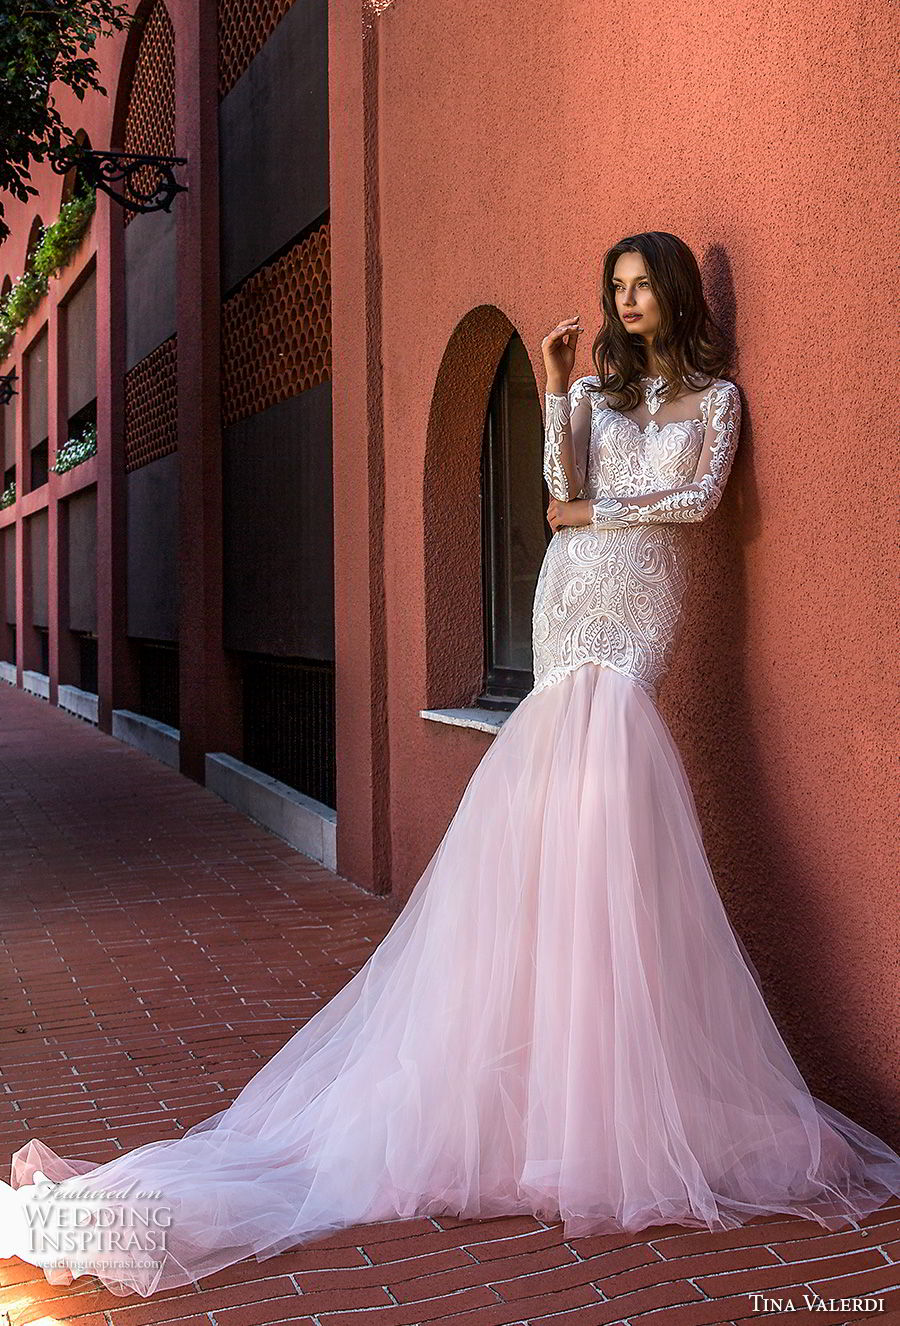 tina valerdi 2019 bridal long sleeves illusion jewel sweetheart neckline heavily embellished bodice blush mermaid wedding dress keyhole back chapel train (7) mv